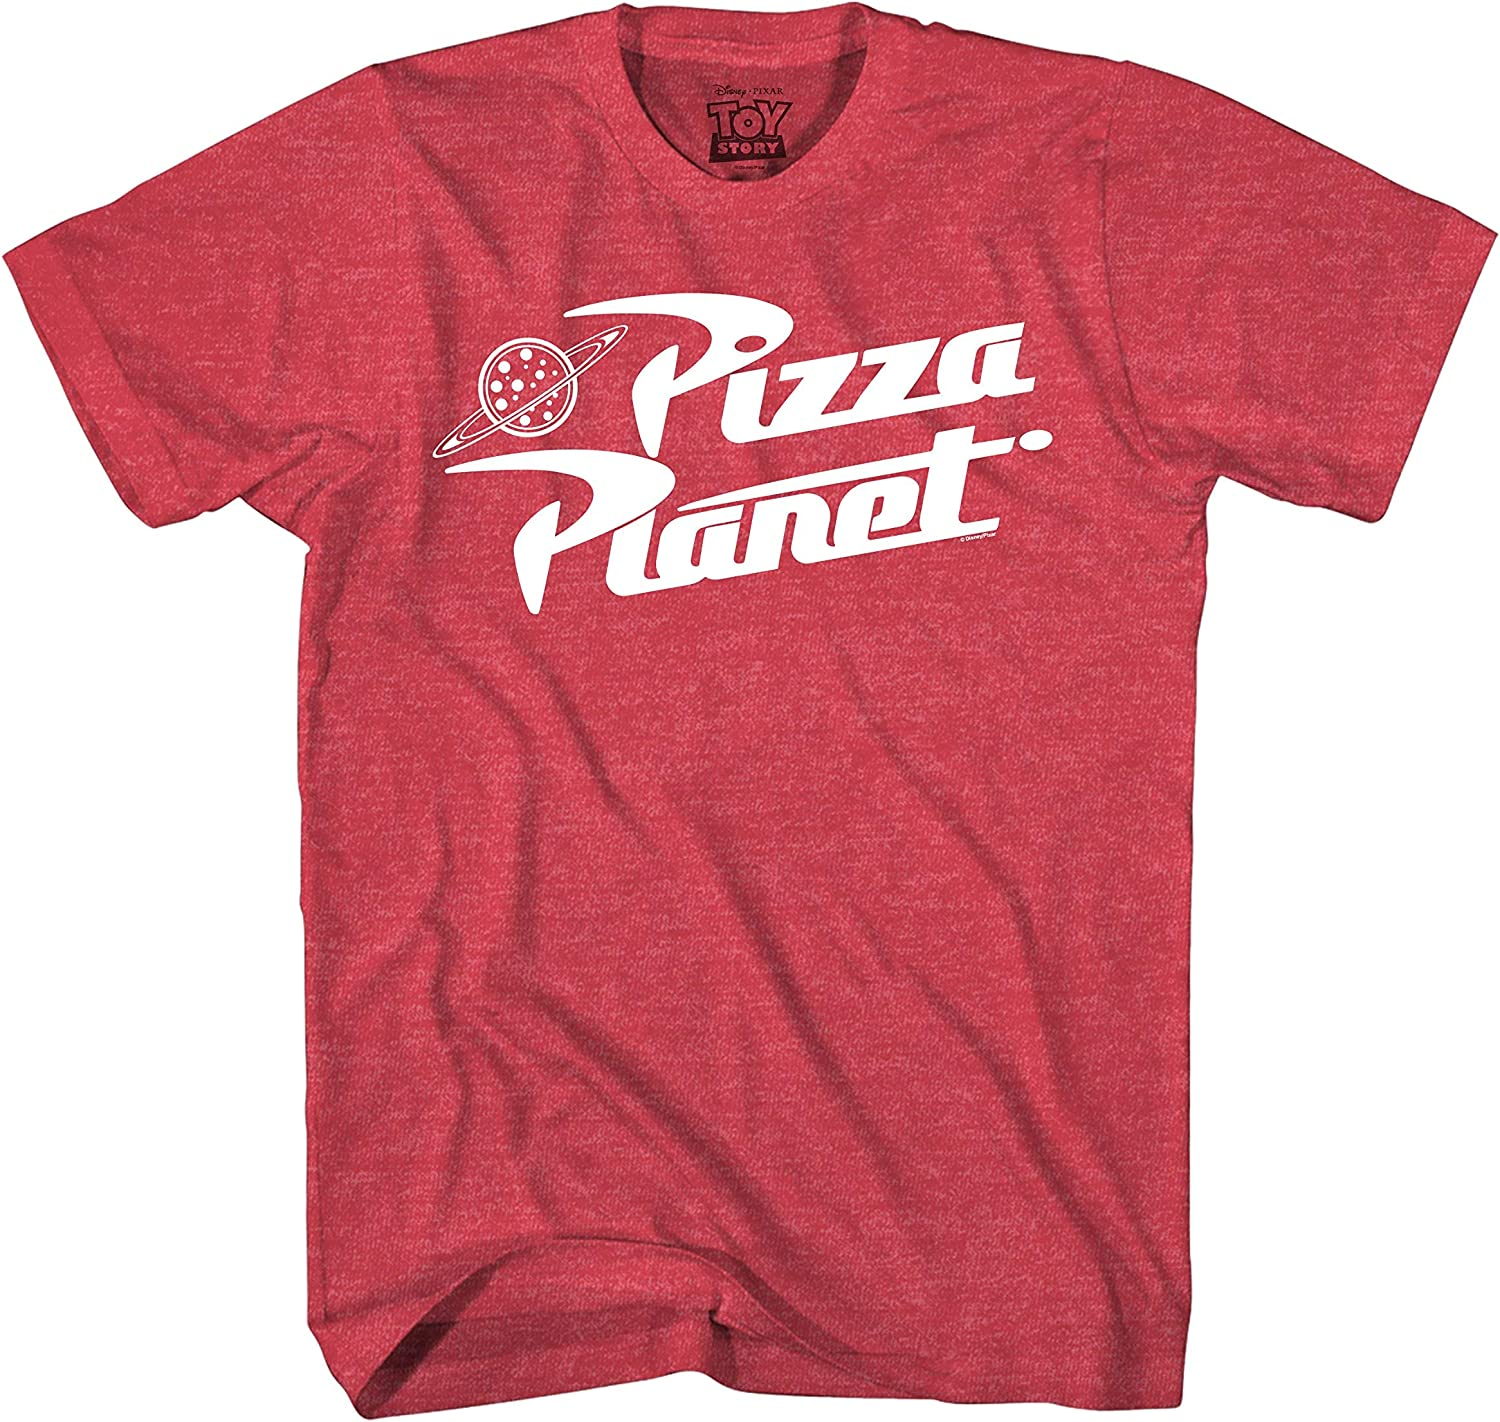 Toy Story Pizza Planet Delivery Adult T-Shirt